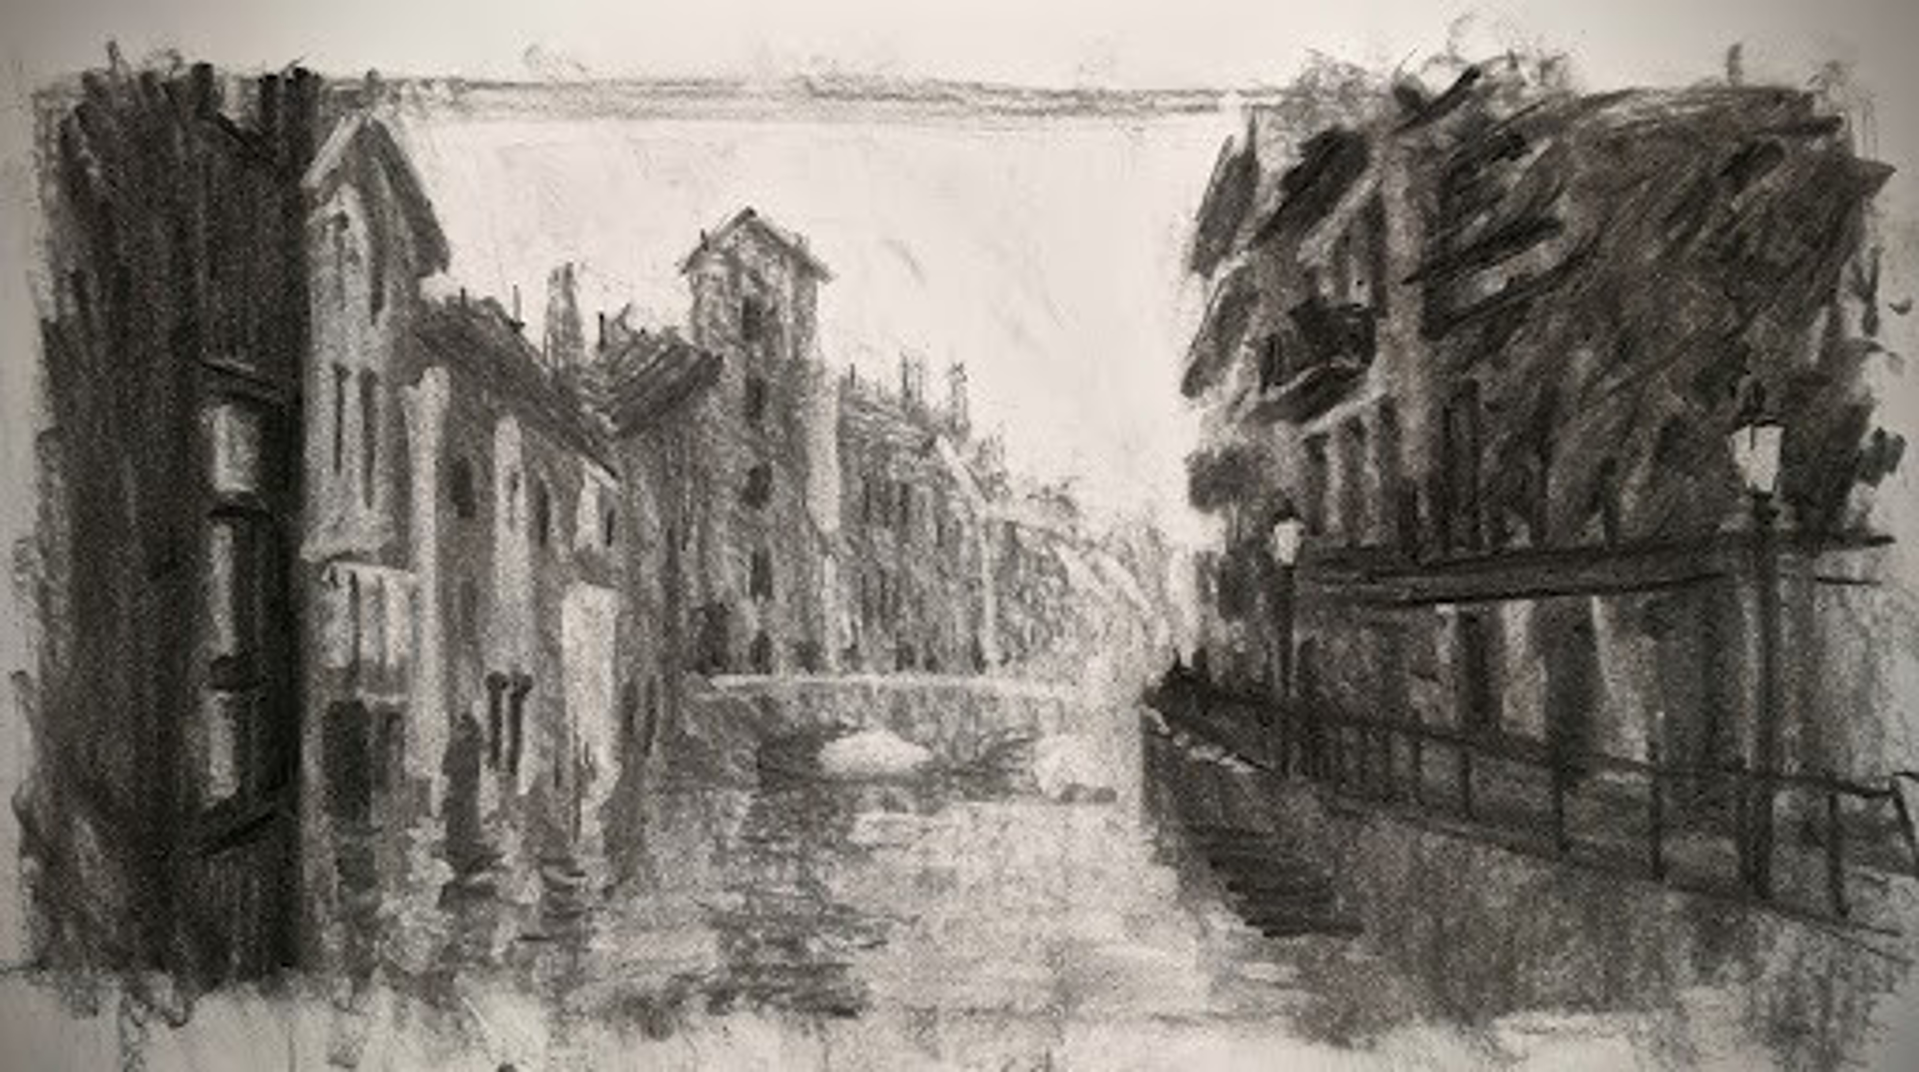 Sketch: Annecy, France by Christopher Clark